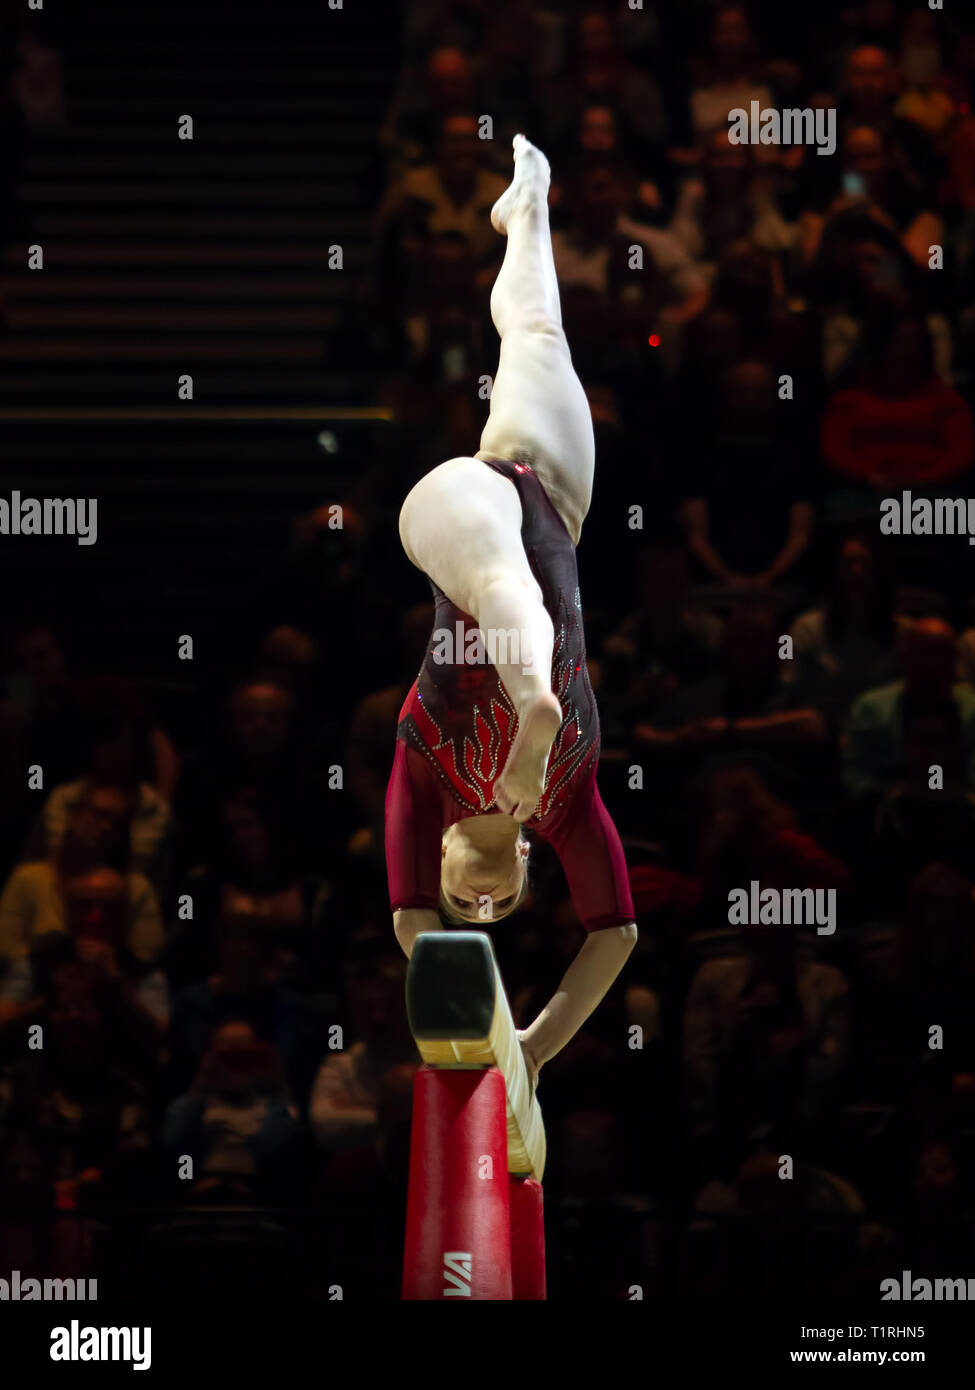 Birmingham, England, UK. 23 March, 2019. Russia's Aliya Mustafina in action during the women's beam competition, during the 2019 Gymnastics World Cup, Stock Photo